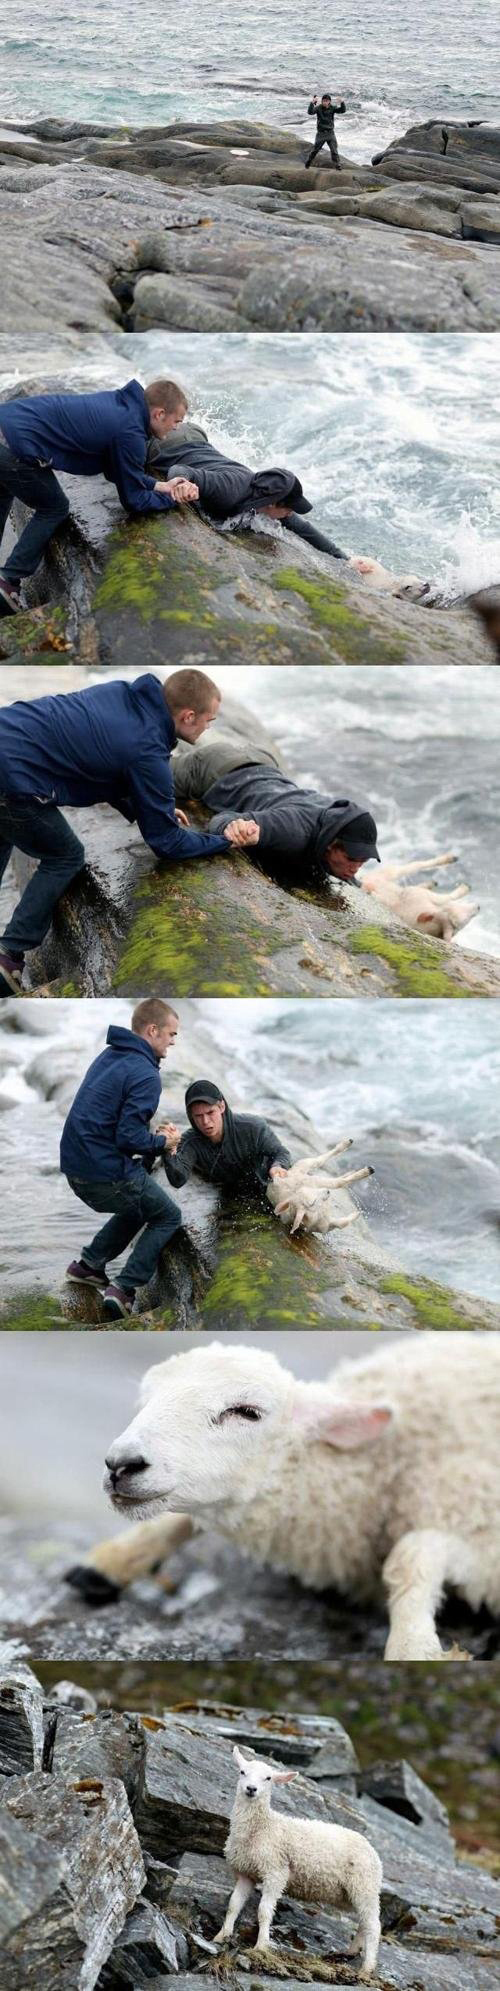 This picture of two Norwegian guys rescuing a sheep from the ocean.